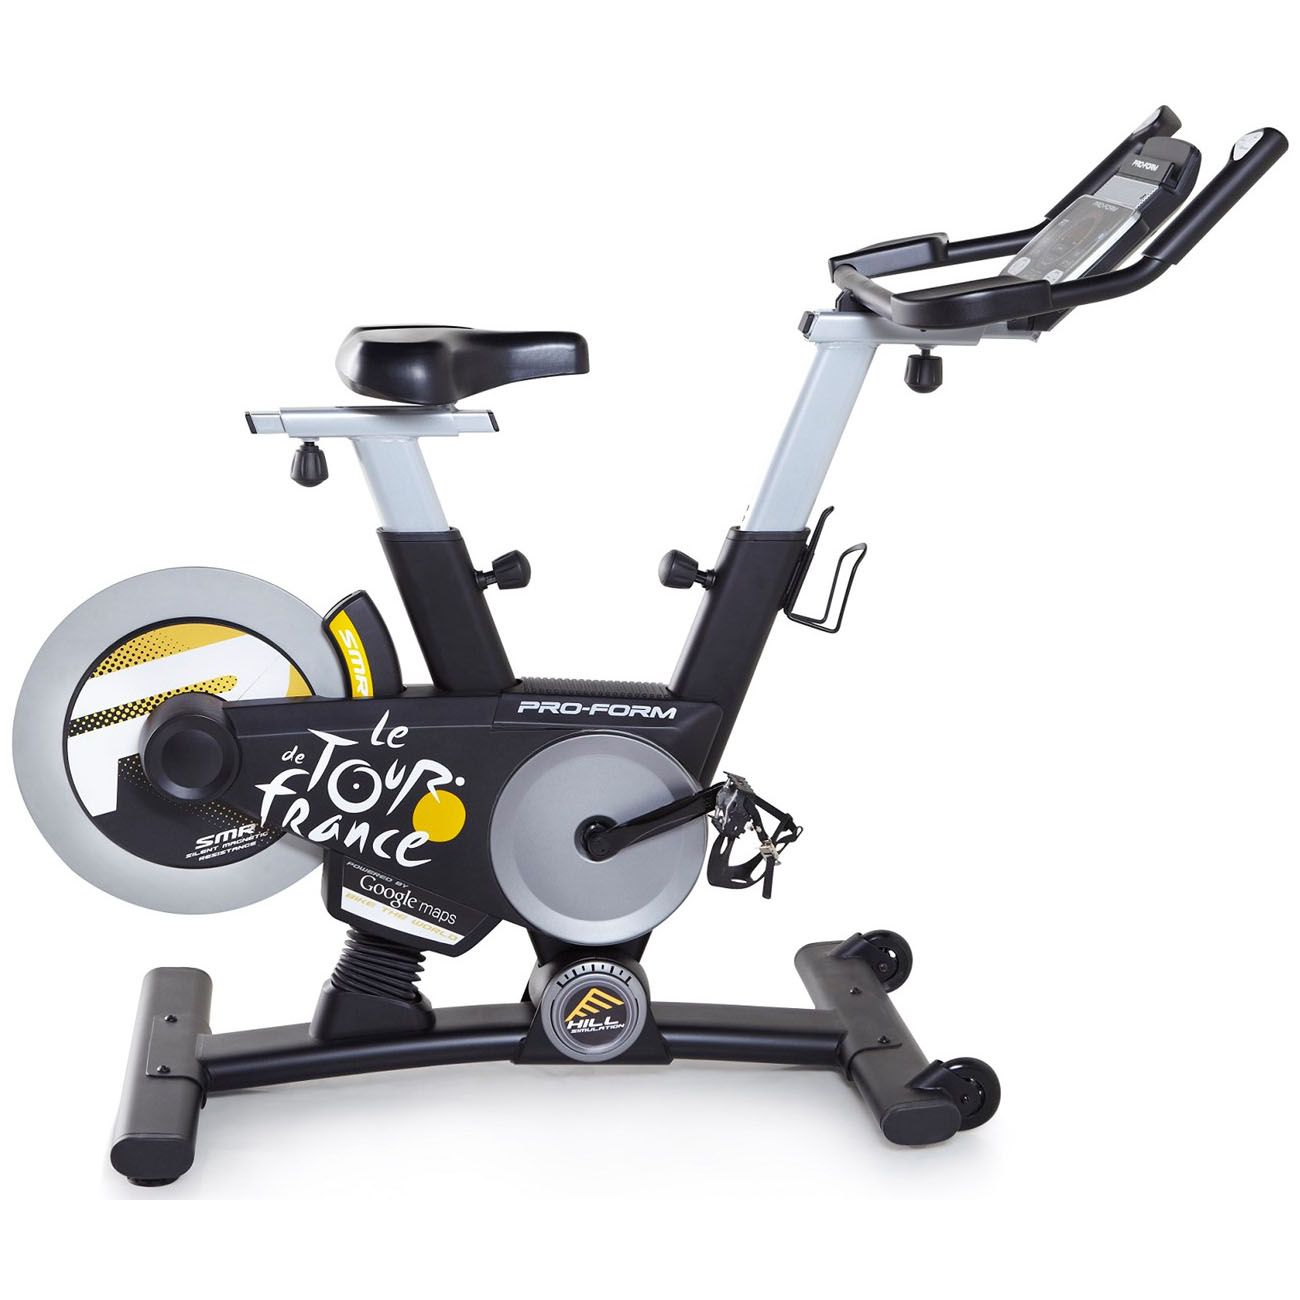 Gymnastics Equipment In Canada: ProForm Tour De France TDF 1.0 Indoor Cycle